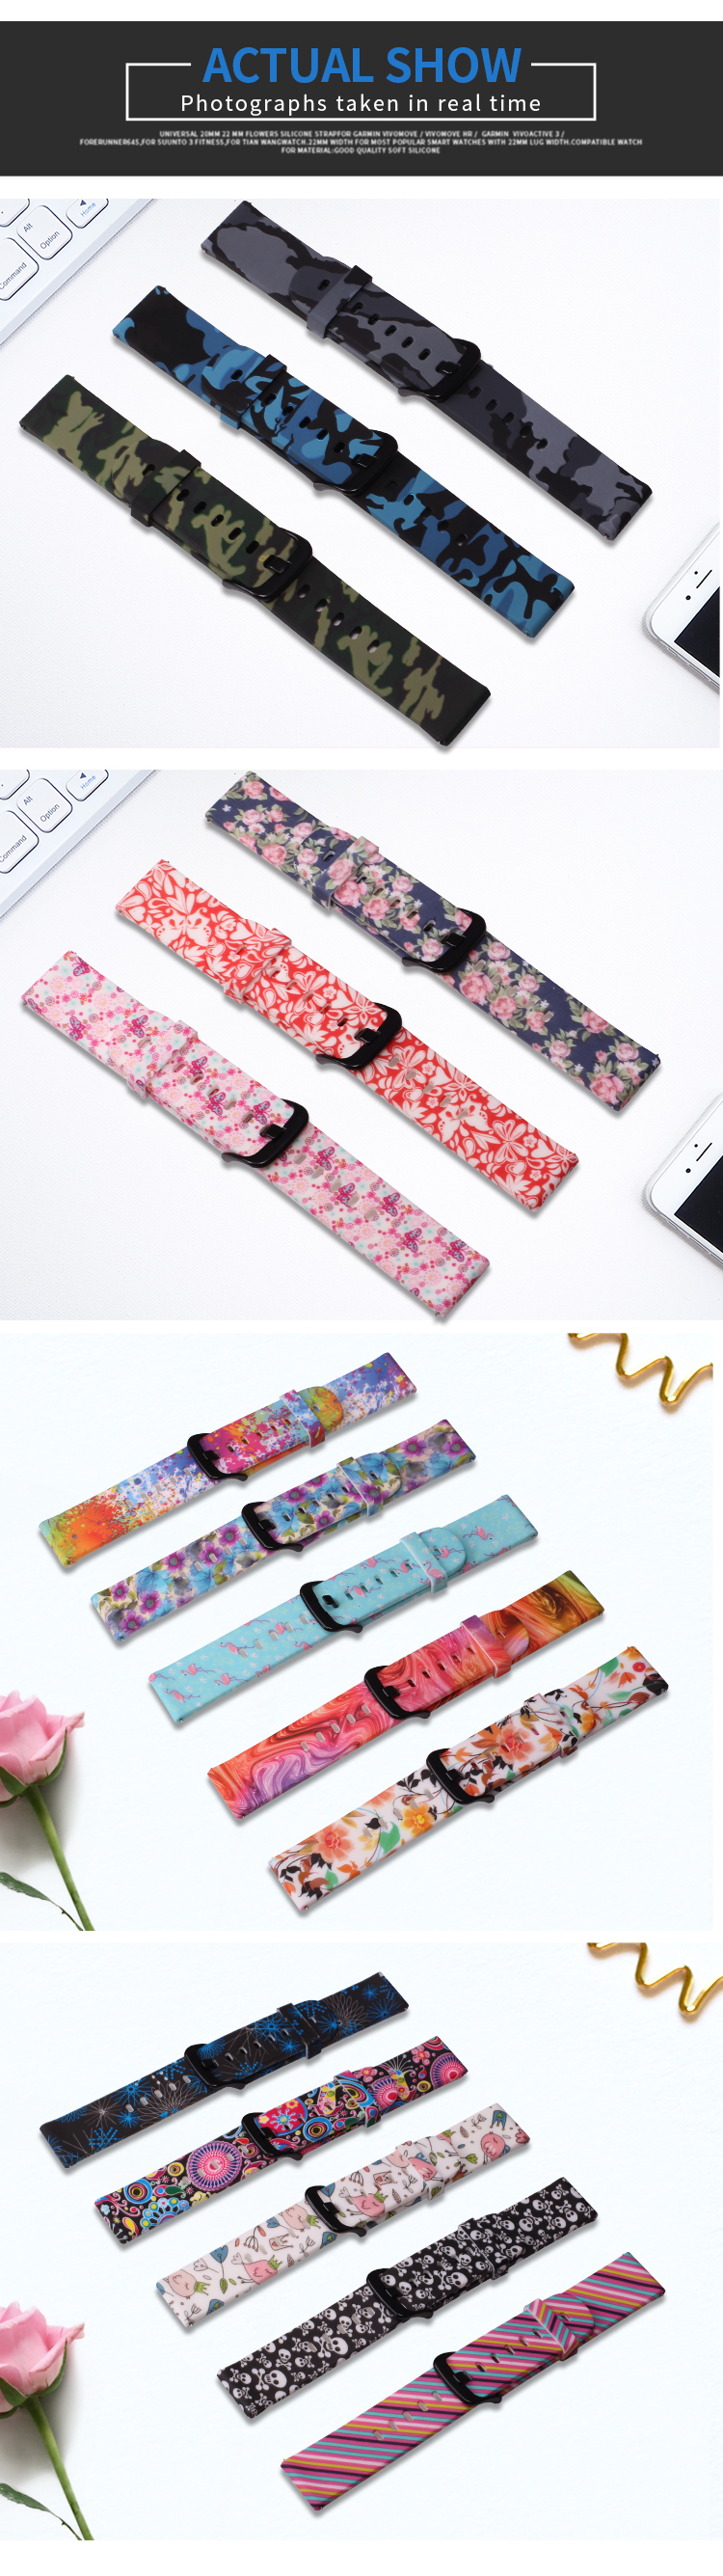 BOORUI Amazfit Bip Strap 20mm Watch Band Camouflage Silicone varied flowers print 20mm 22mm wrist strap For Xiaomi Huami Amazfit